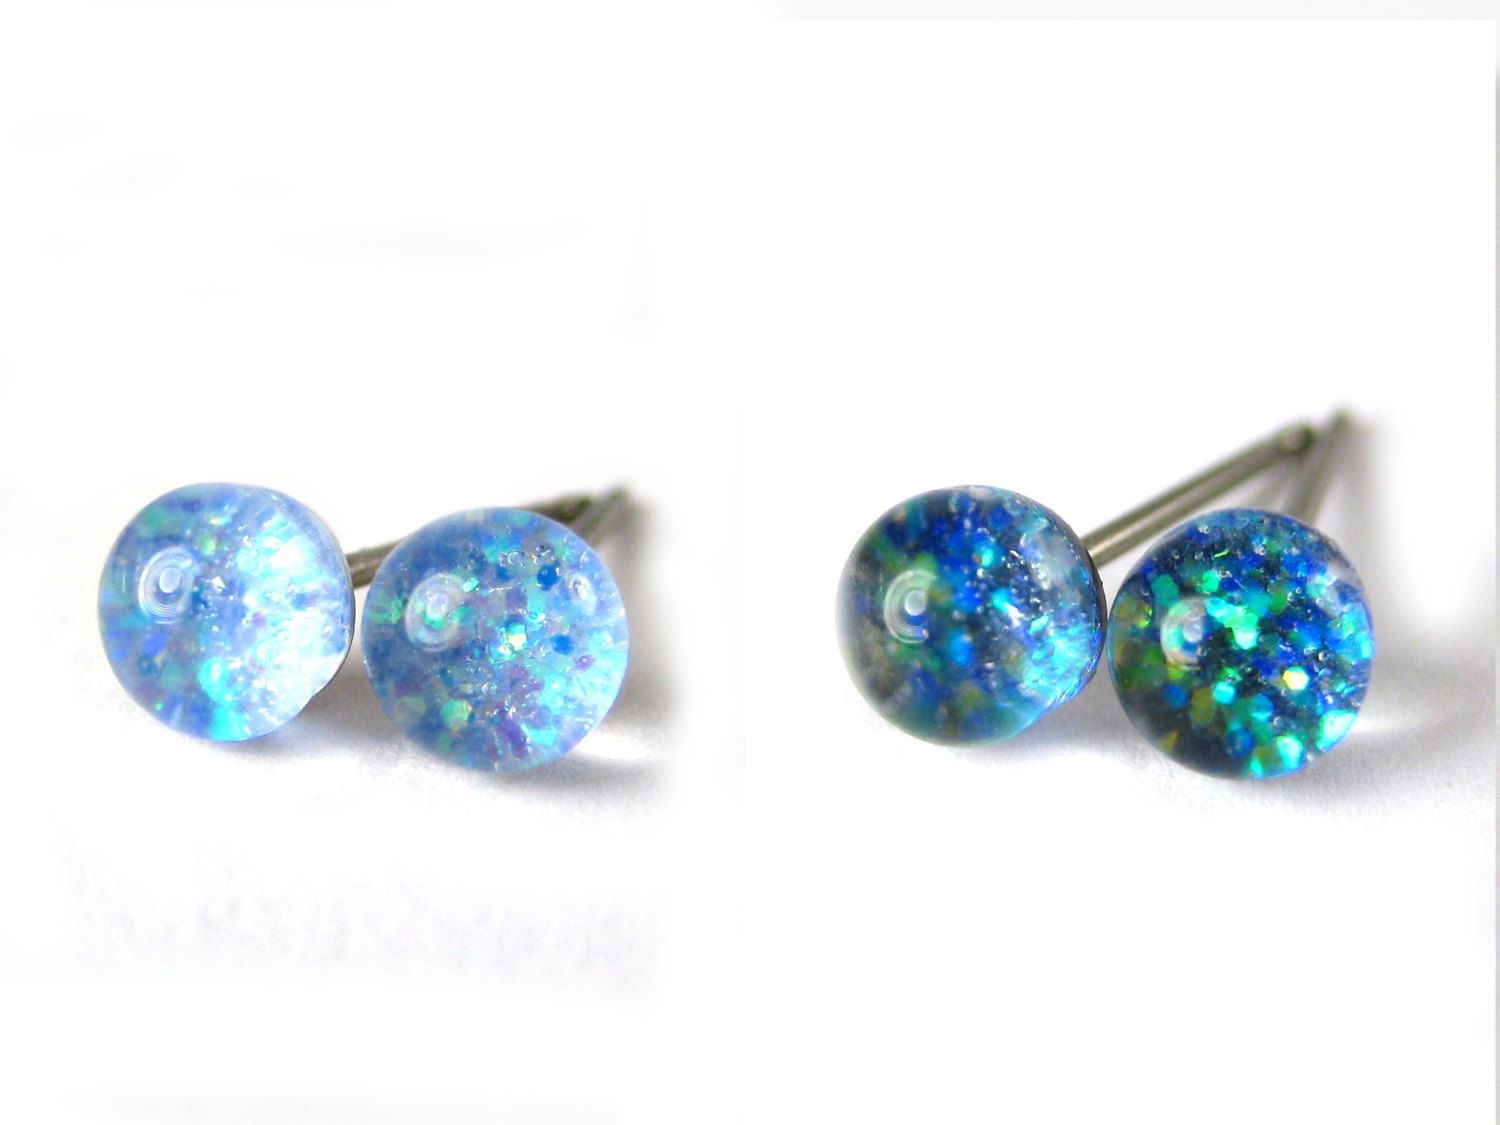 d69b39243 Lions Breath Glitter Glass Stud Earrings, Tiny 5mm Hypoallergenic Studs,  Pure Titanium Posts, Surgical Steel, Irredescent Sparkle, Canadian by  Resiness on ...